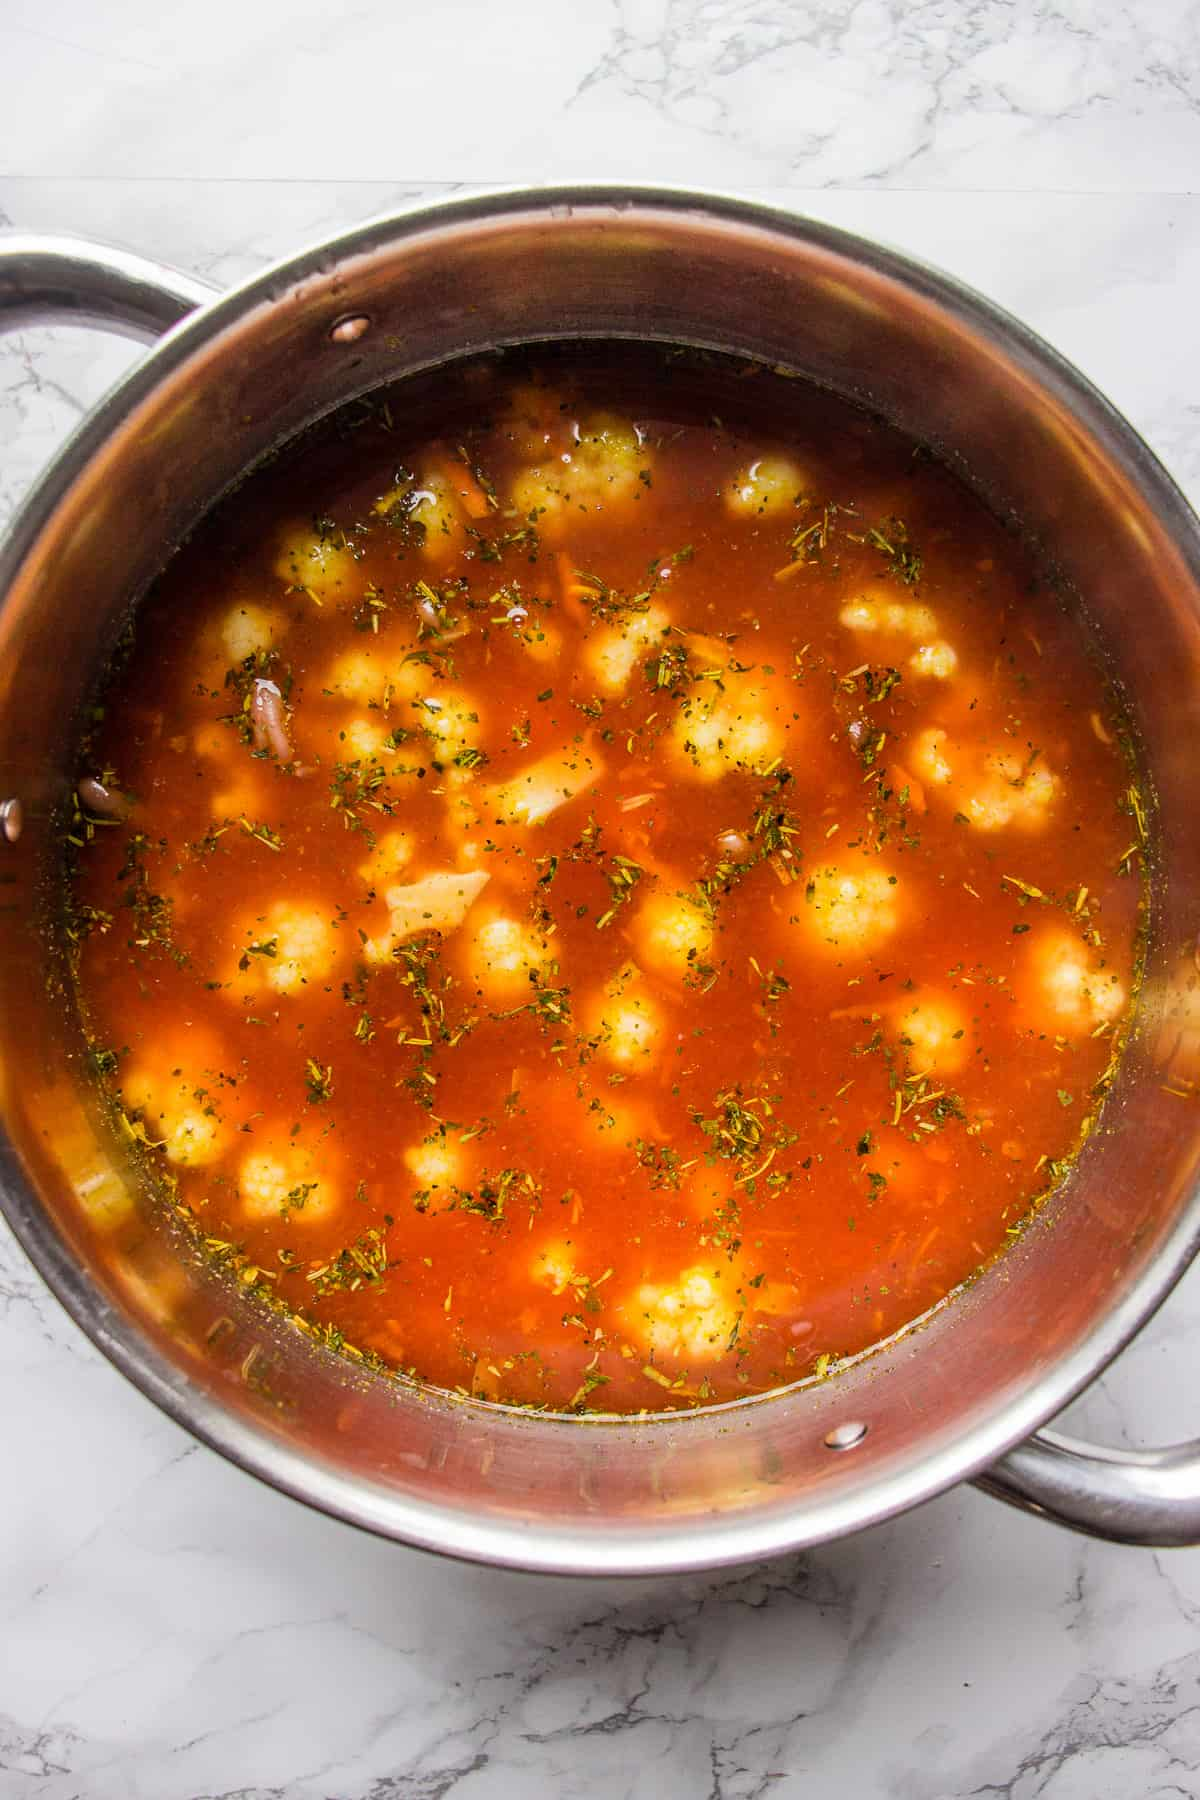 Adding sauteed vegetables and cauliflower to a pot with a broth